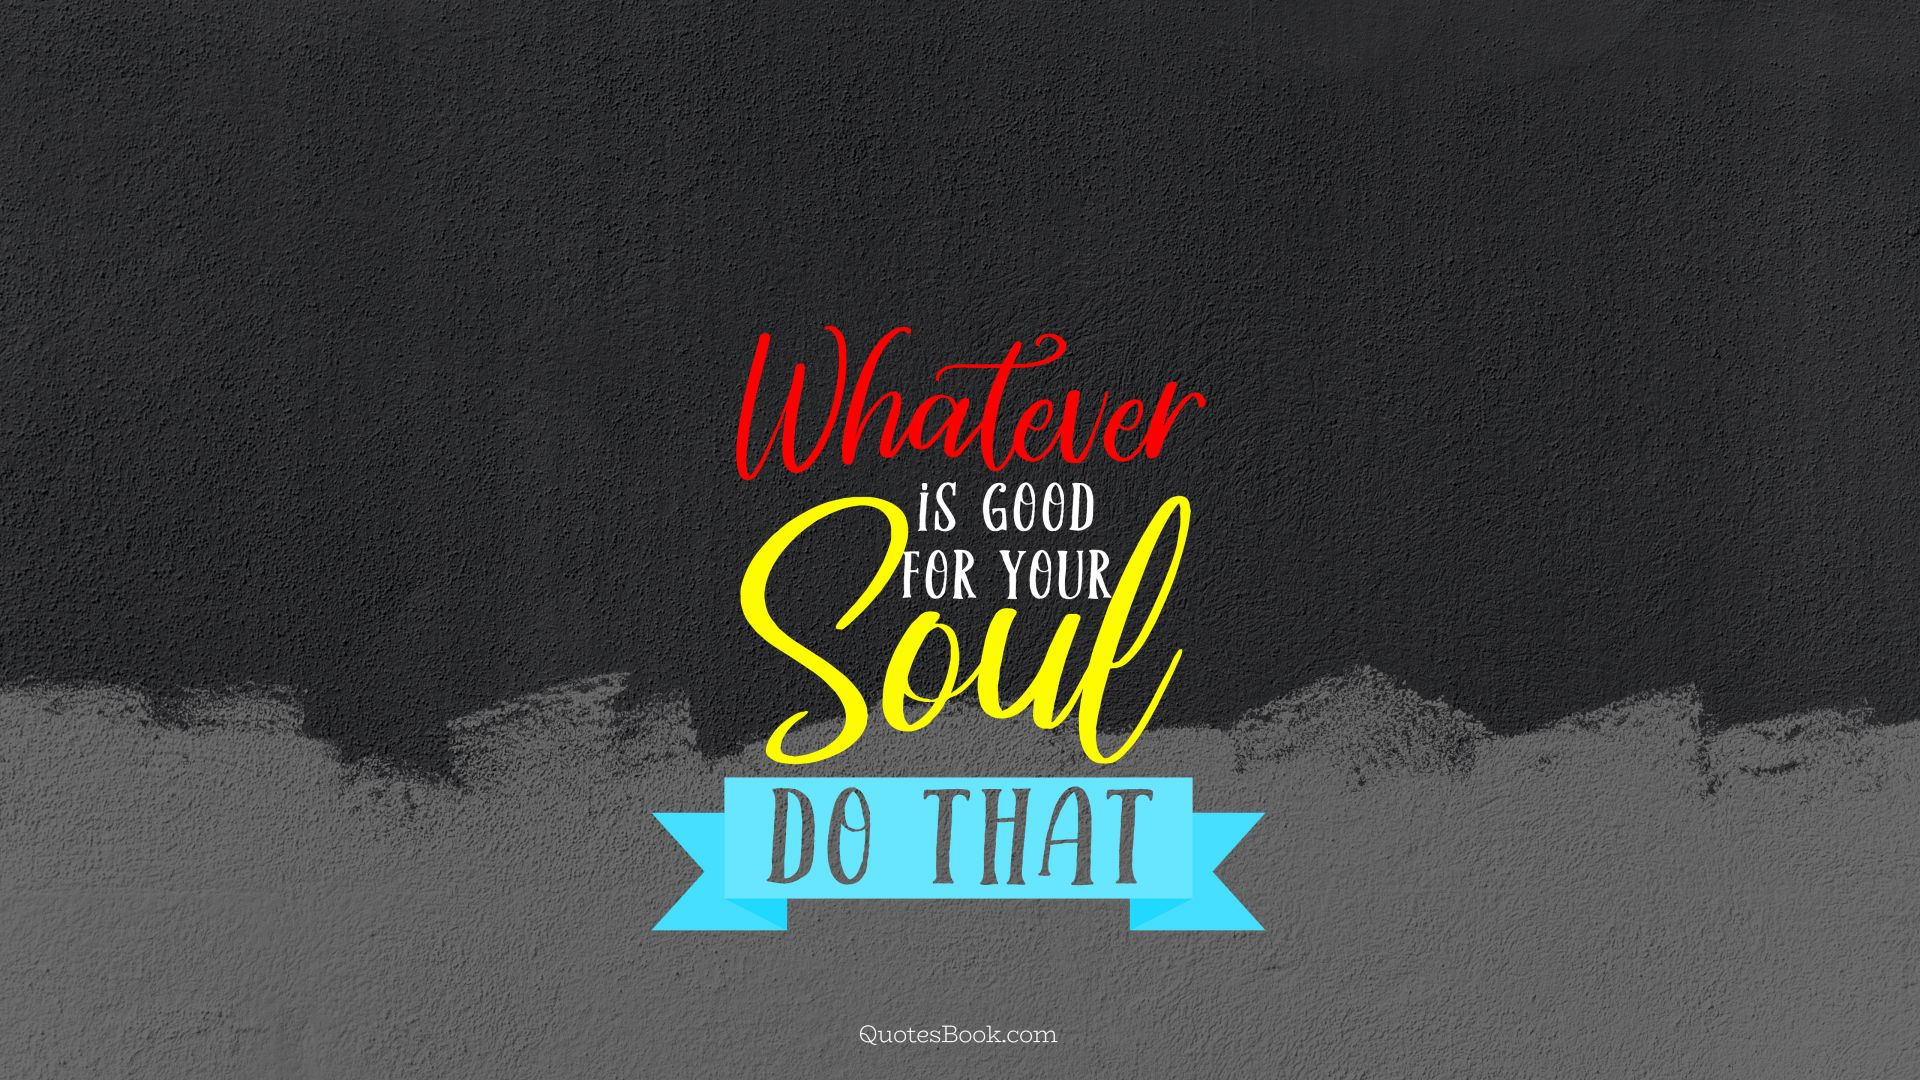 Whatever is good for your soul do that